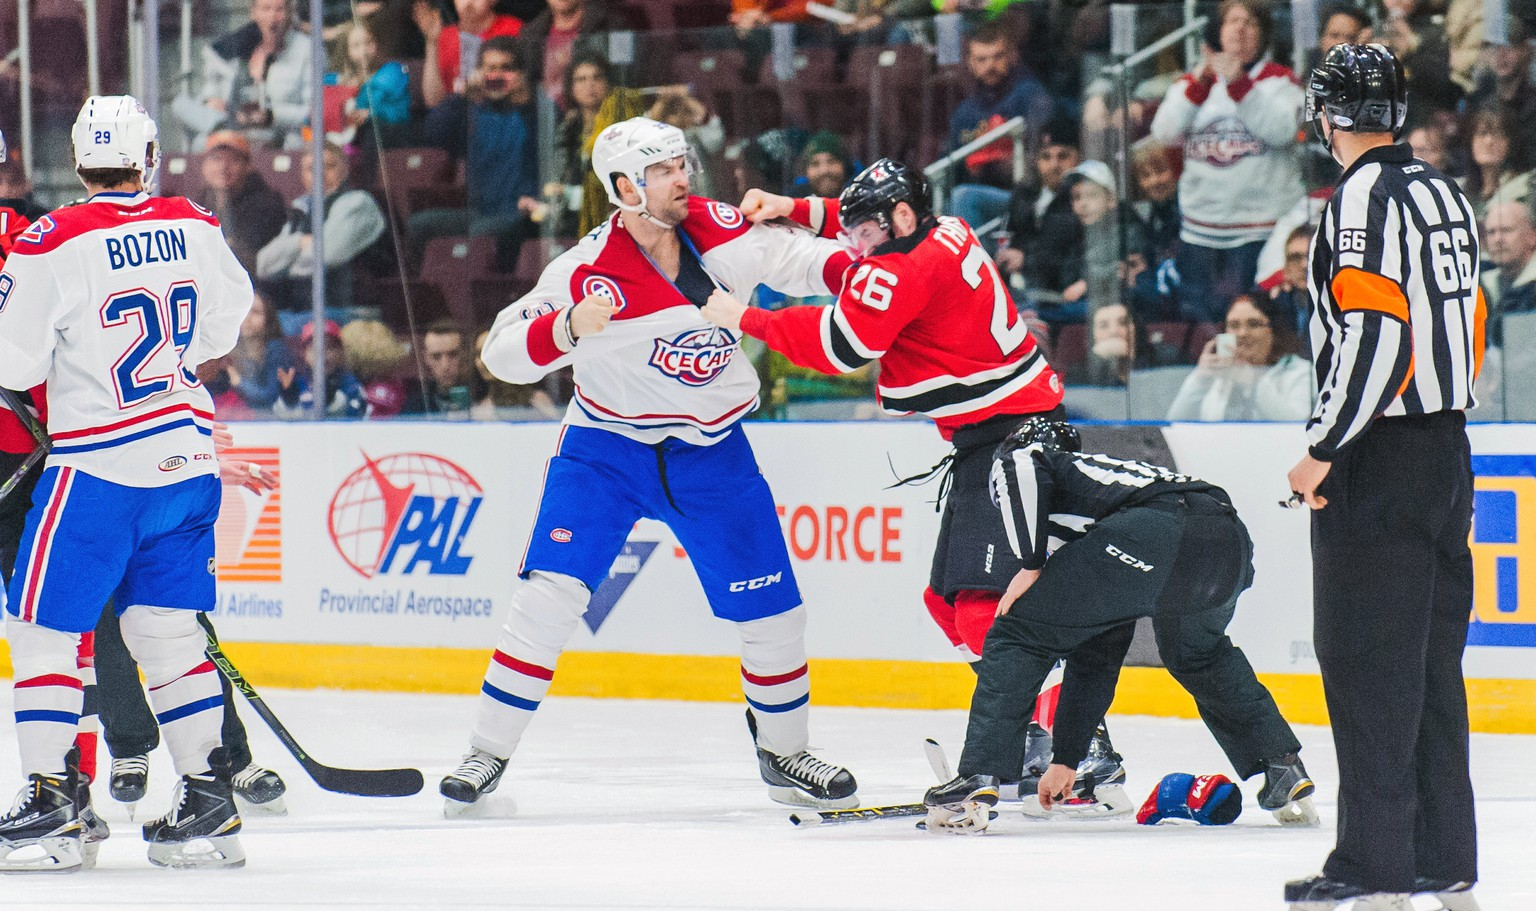 In this March 4, 2016 photo provided by the St. John's IceCaps, IceCaps player John Scott and Albany Devils' Ben Thomson fight during an AHL game in St. John's, Newfoundland.  The journeyman tough guy who won the hockey world over in becoming the NHL All-Star Game MVP is having a blast playing in the American Hockey League's eastern-most outpost. (Colin Peddle/St. John's IceCaps via AP)